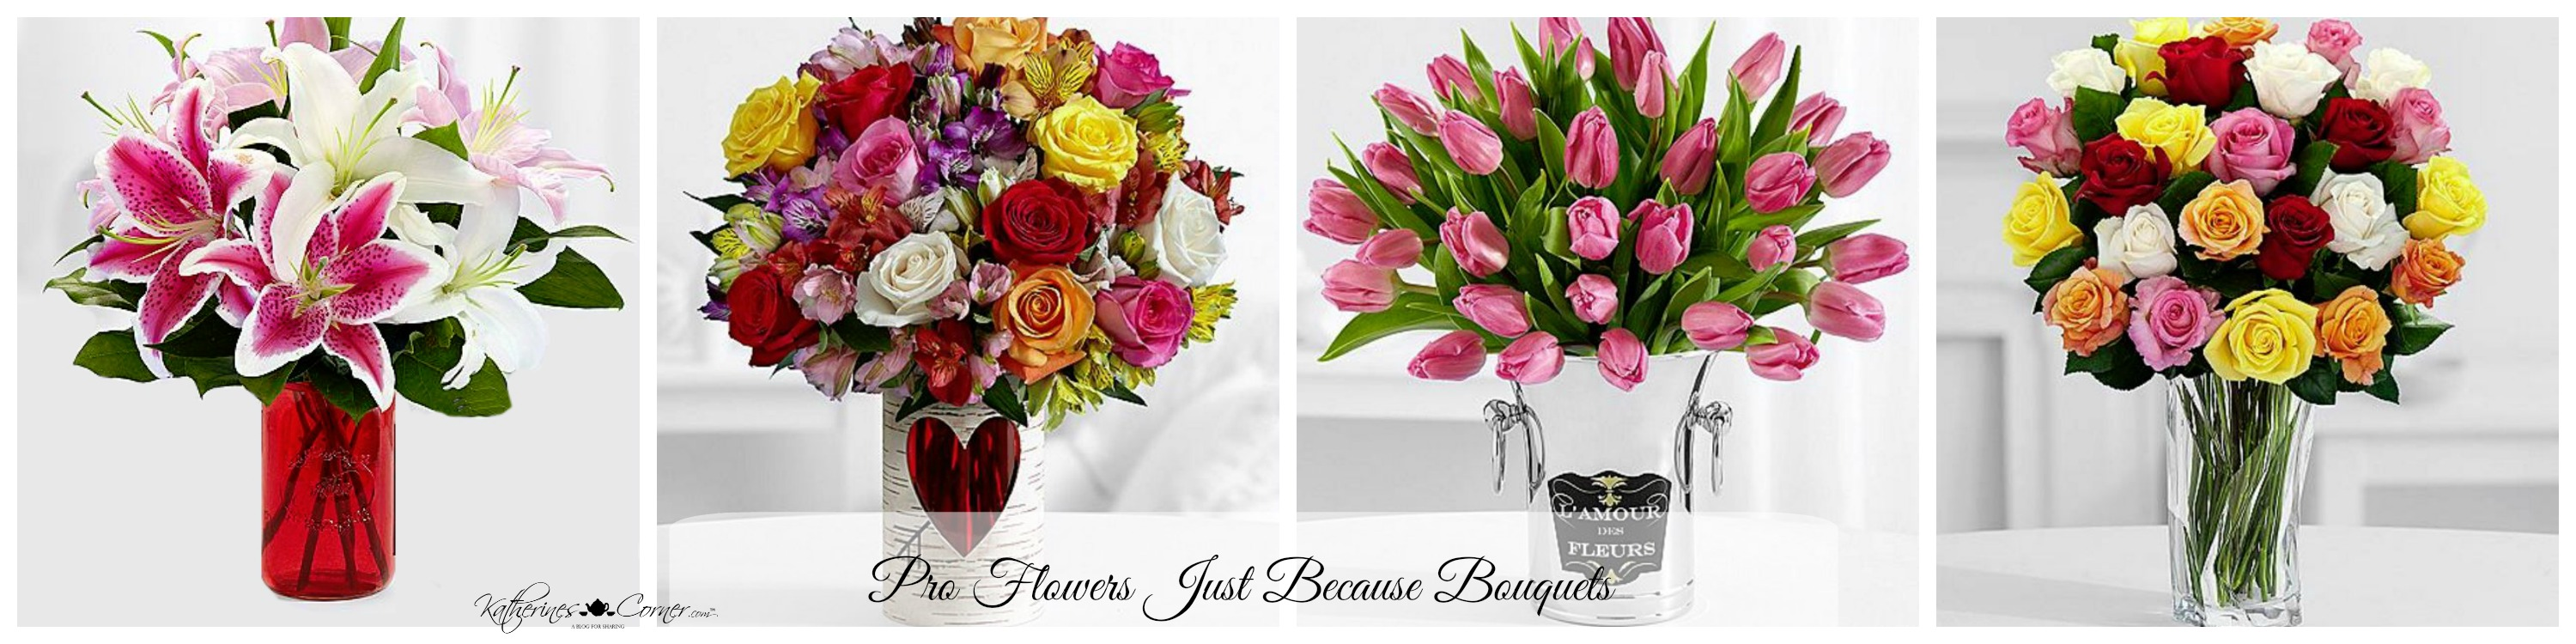 just because pro flowers